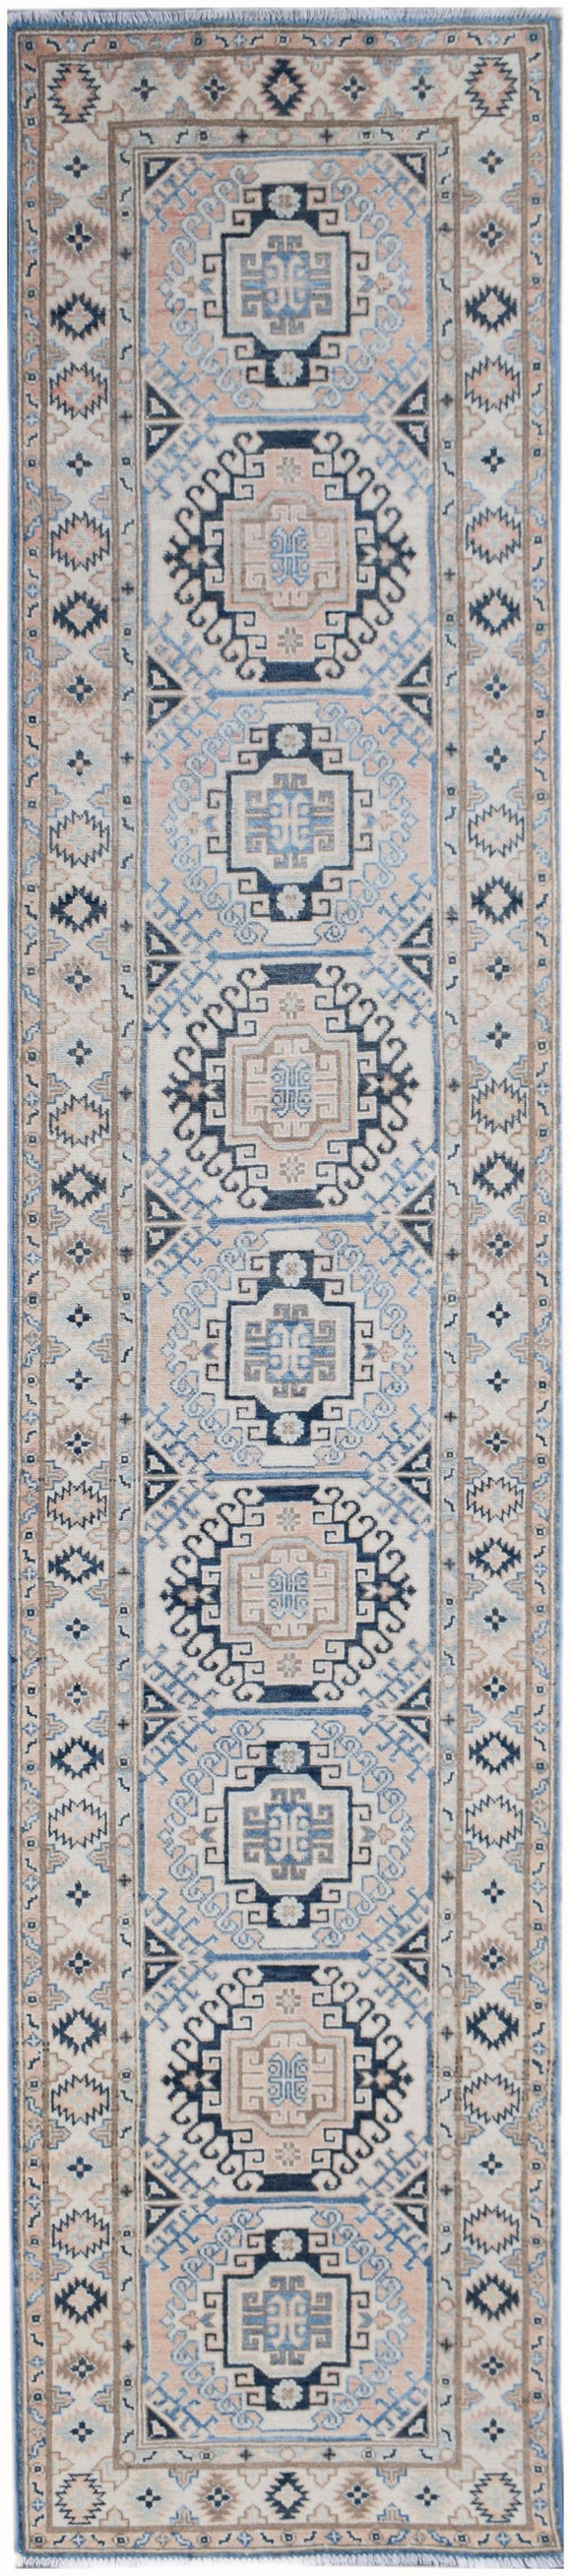 Handmade Sultan Collection Hallway Runner | 401 x 83 cm | 13'2